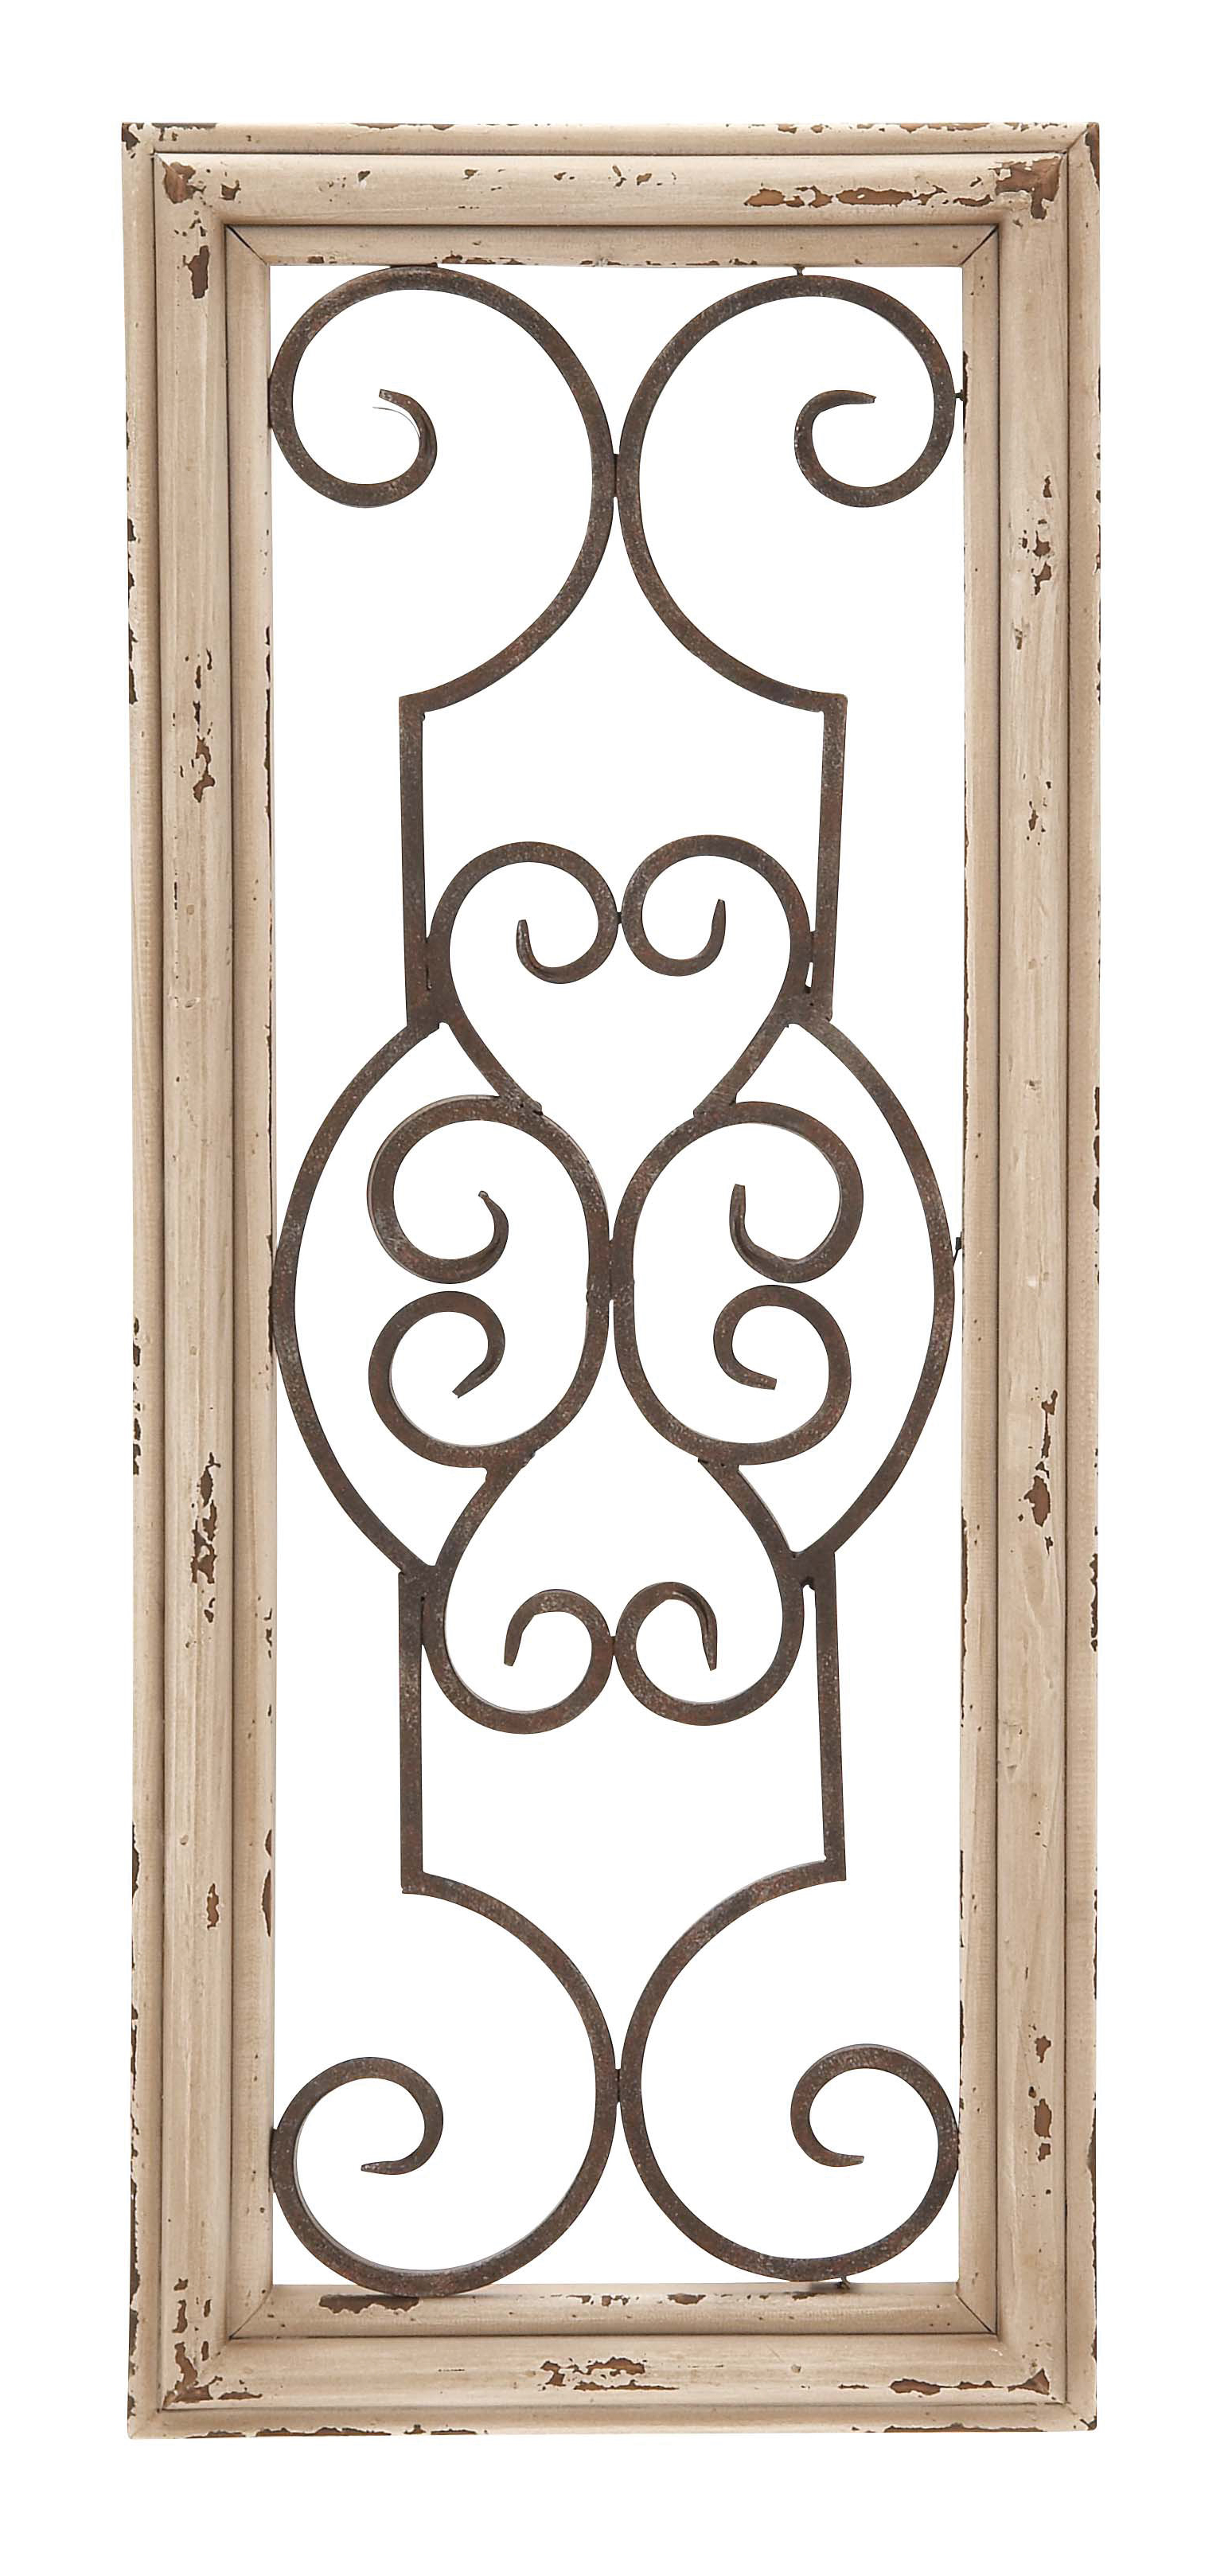 Favorite 1 Piece Ortie Panel Wall Decor Intended For 1 Piece Ortie Panel Wall Décor & Reviews (View 9 of 20)